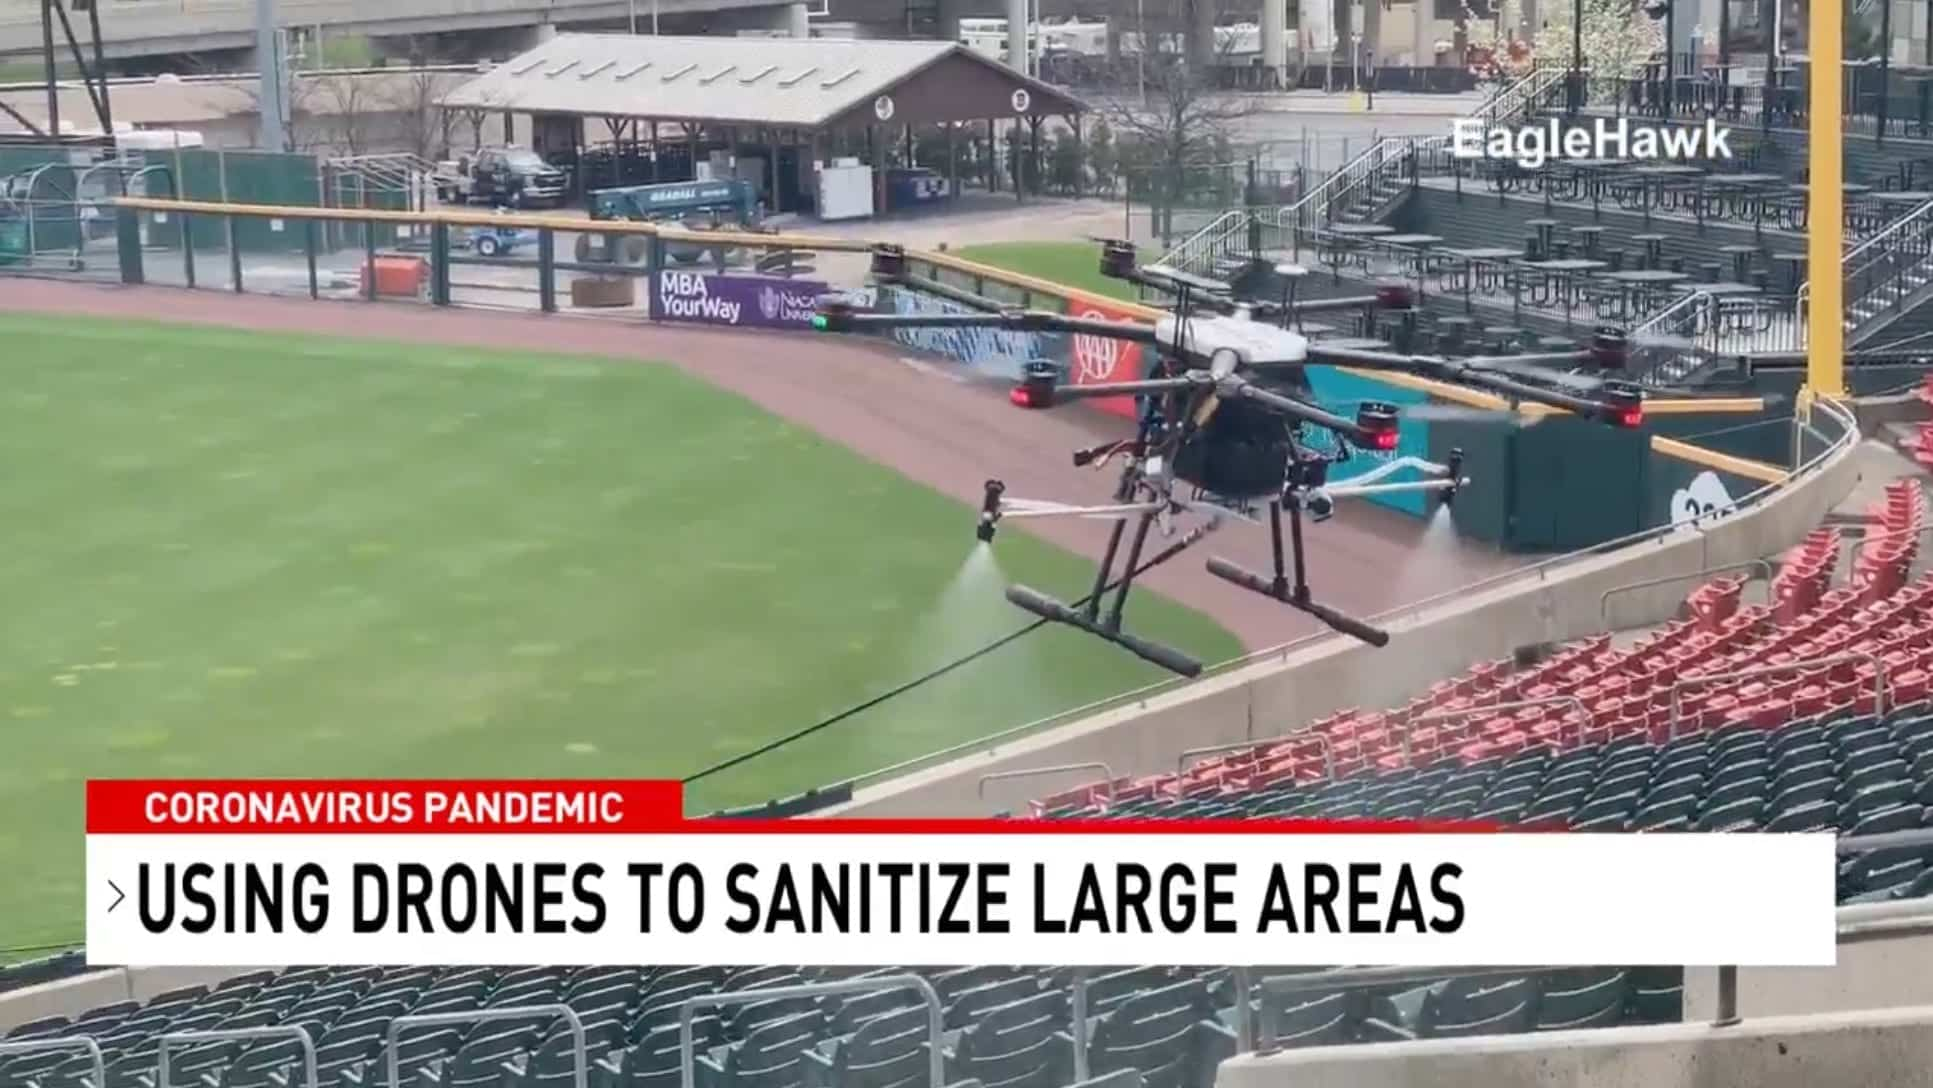 Kill coronavirus with drones made in Syracuse to bring sports back